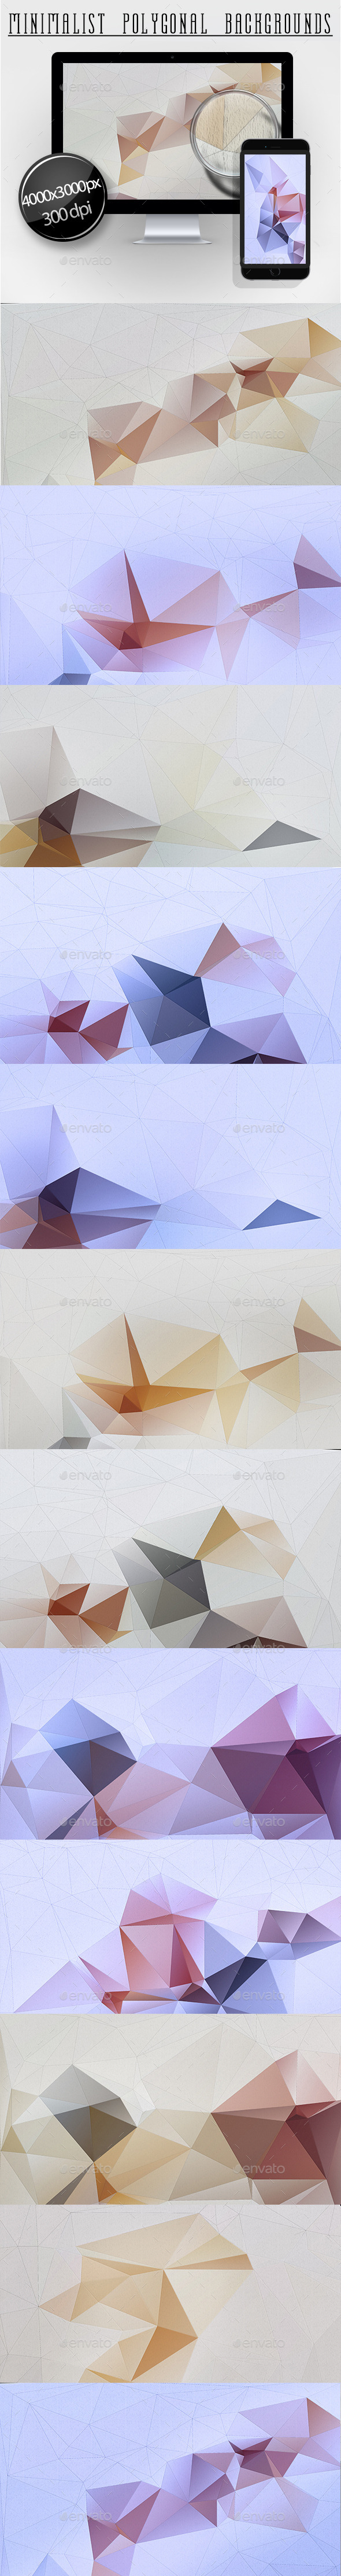 Minimalist Polygonal Backgrounds - Abstract Backgrounds